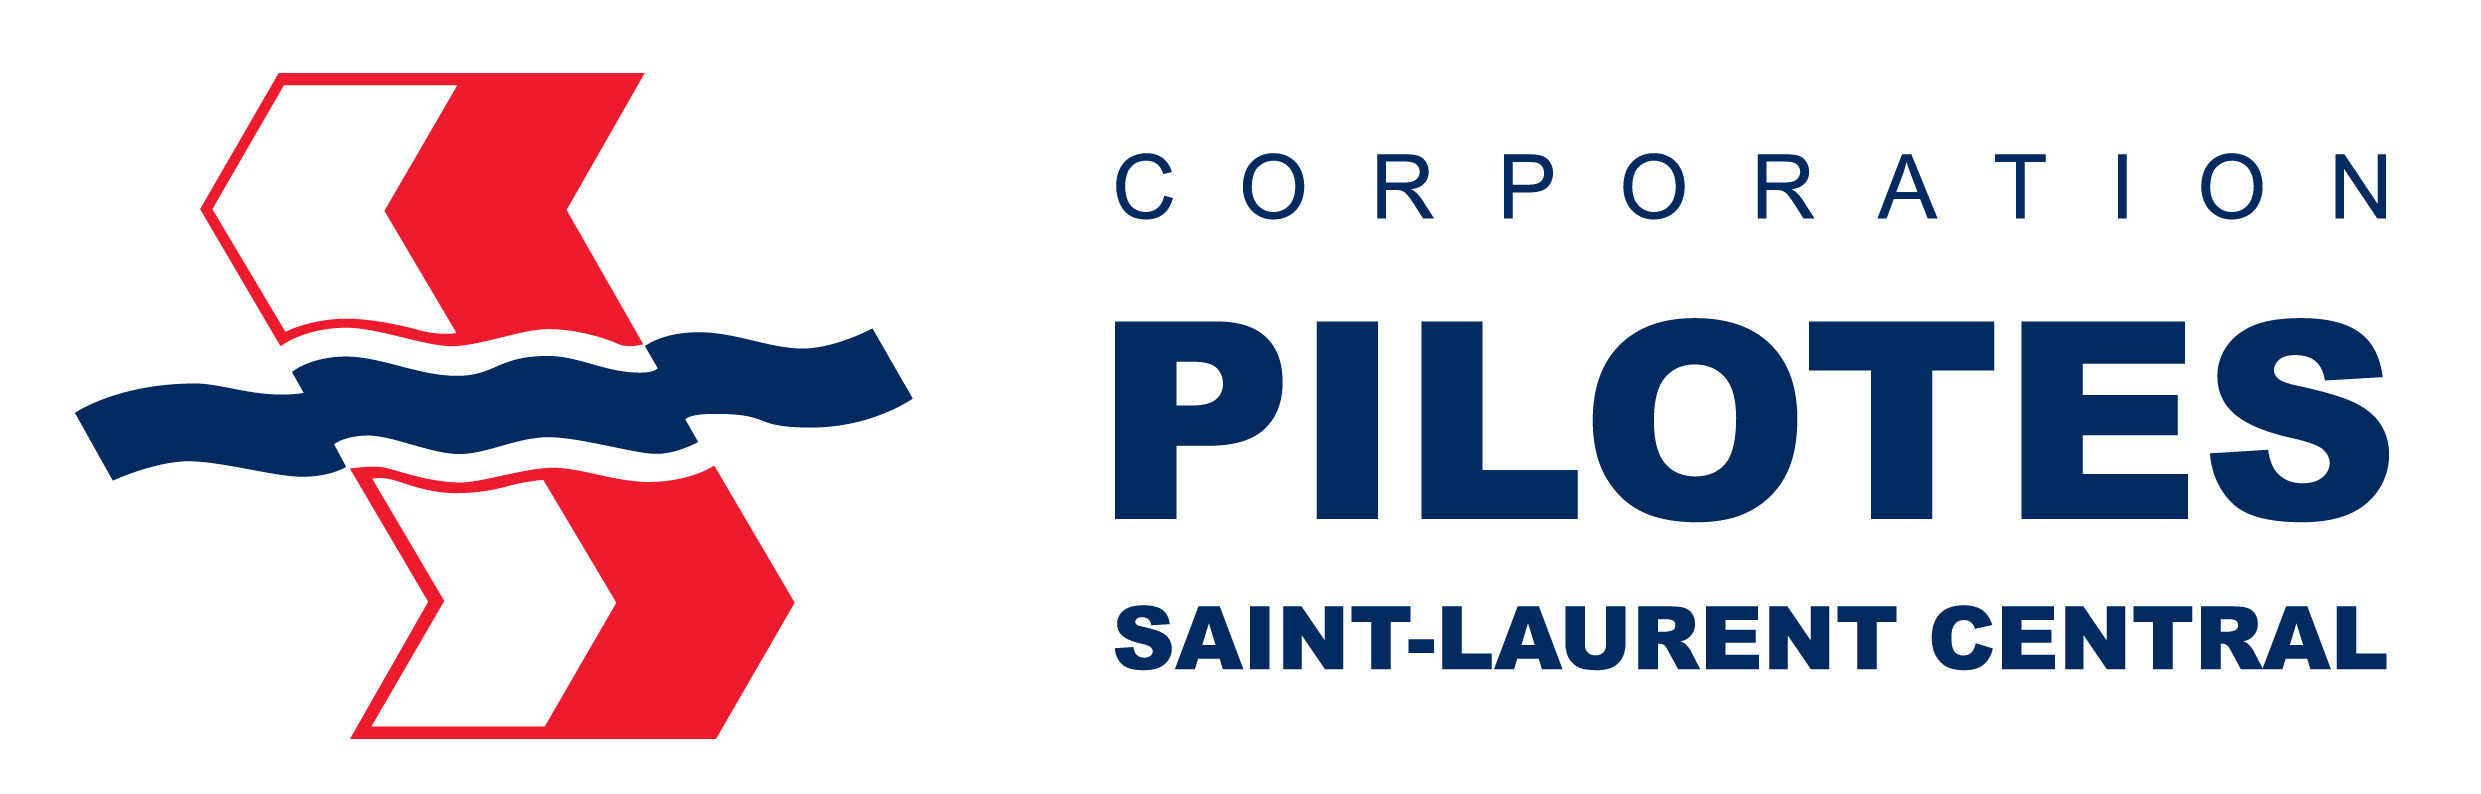 Corporation des pilotes du Saint-Laurent central